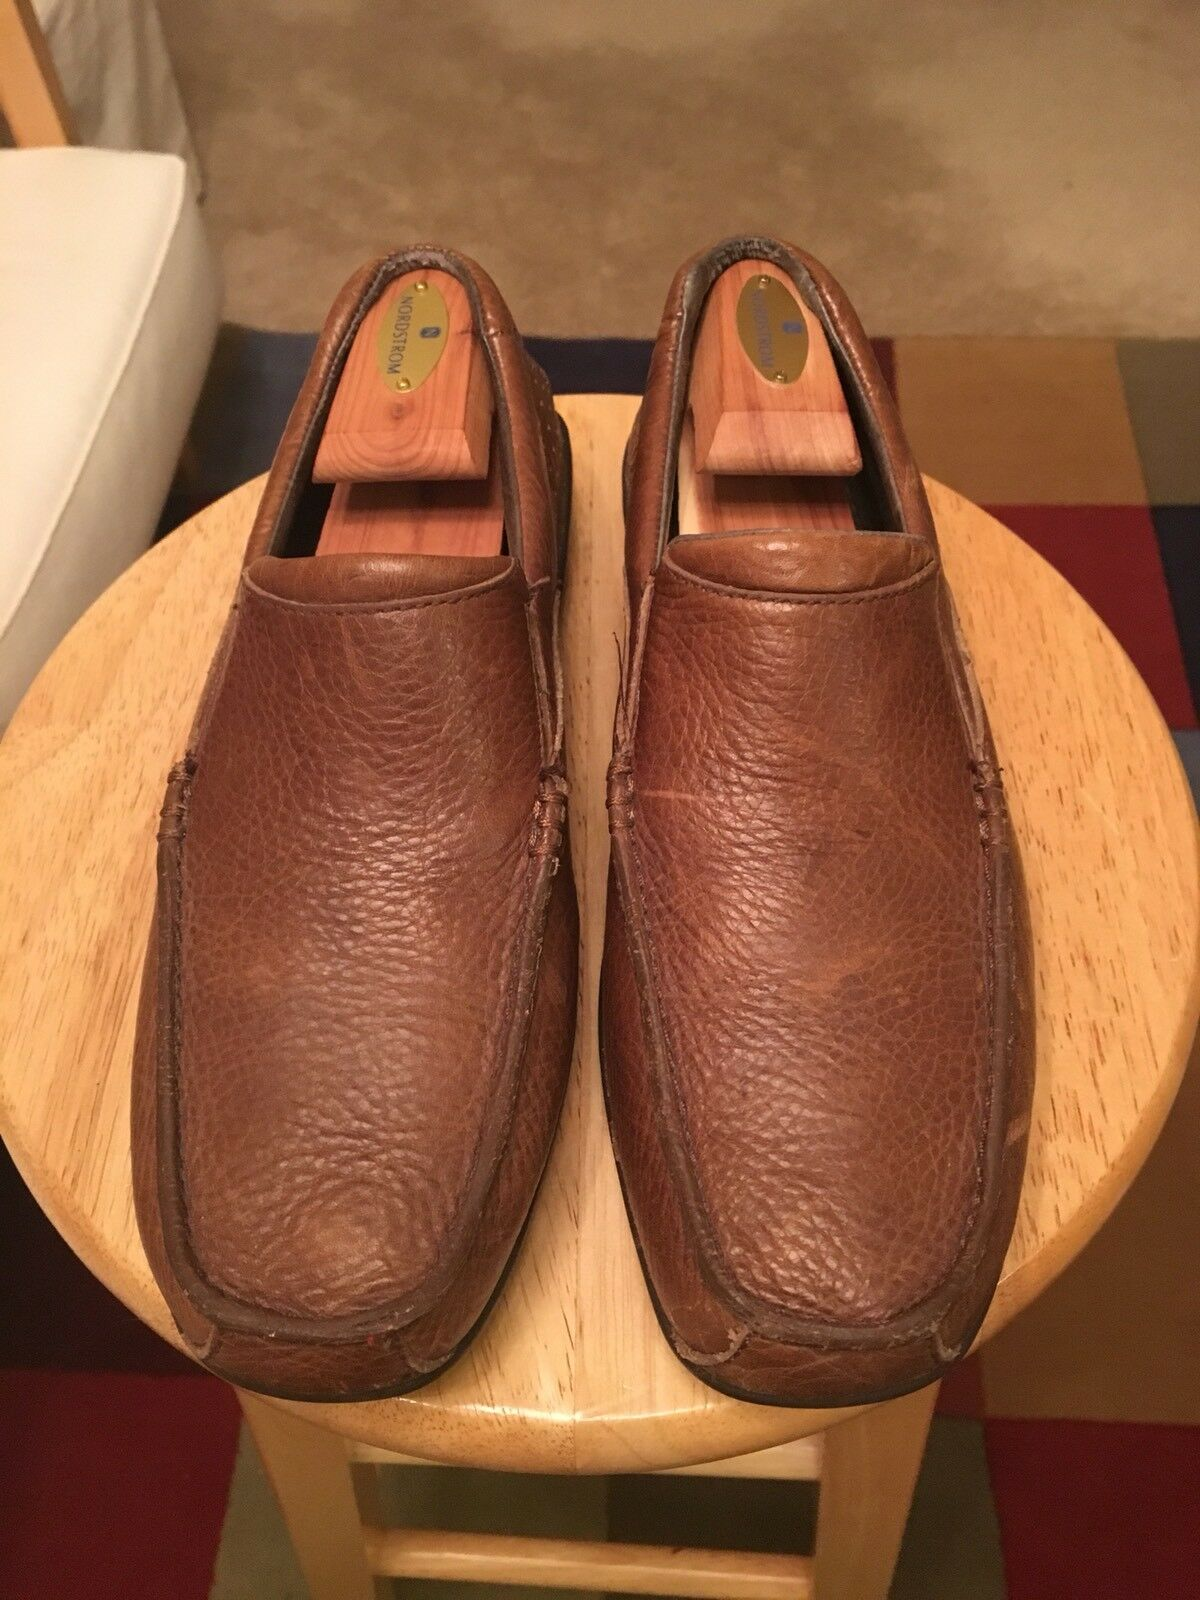 Merrell Performance Brown Dark Earth Men's US8 Leather Driving Loafers shoes